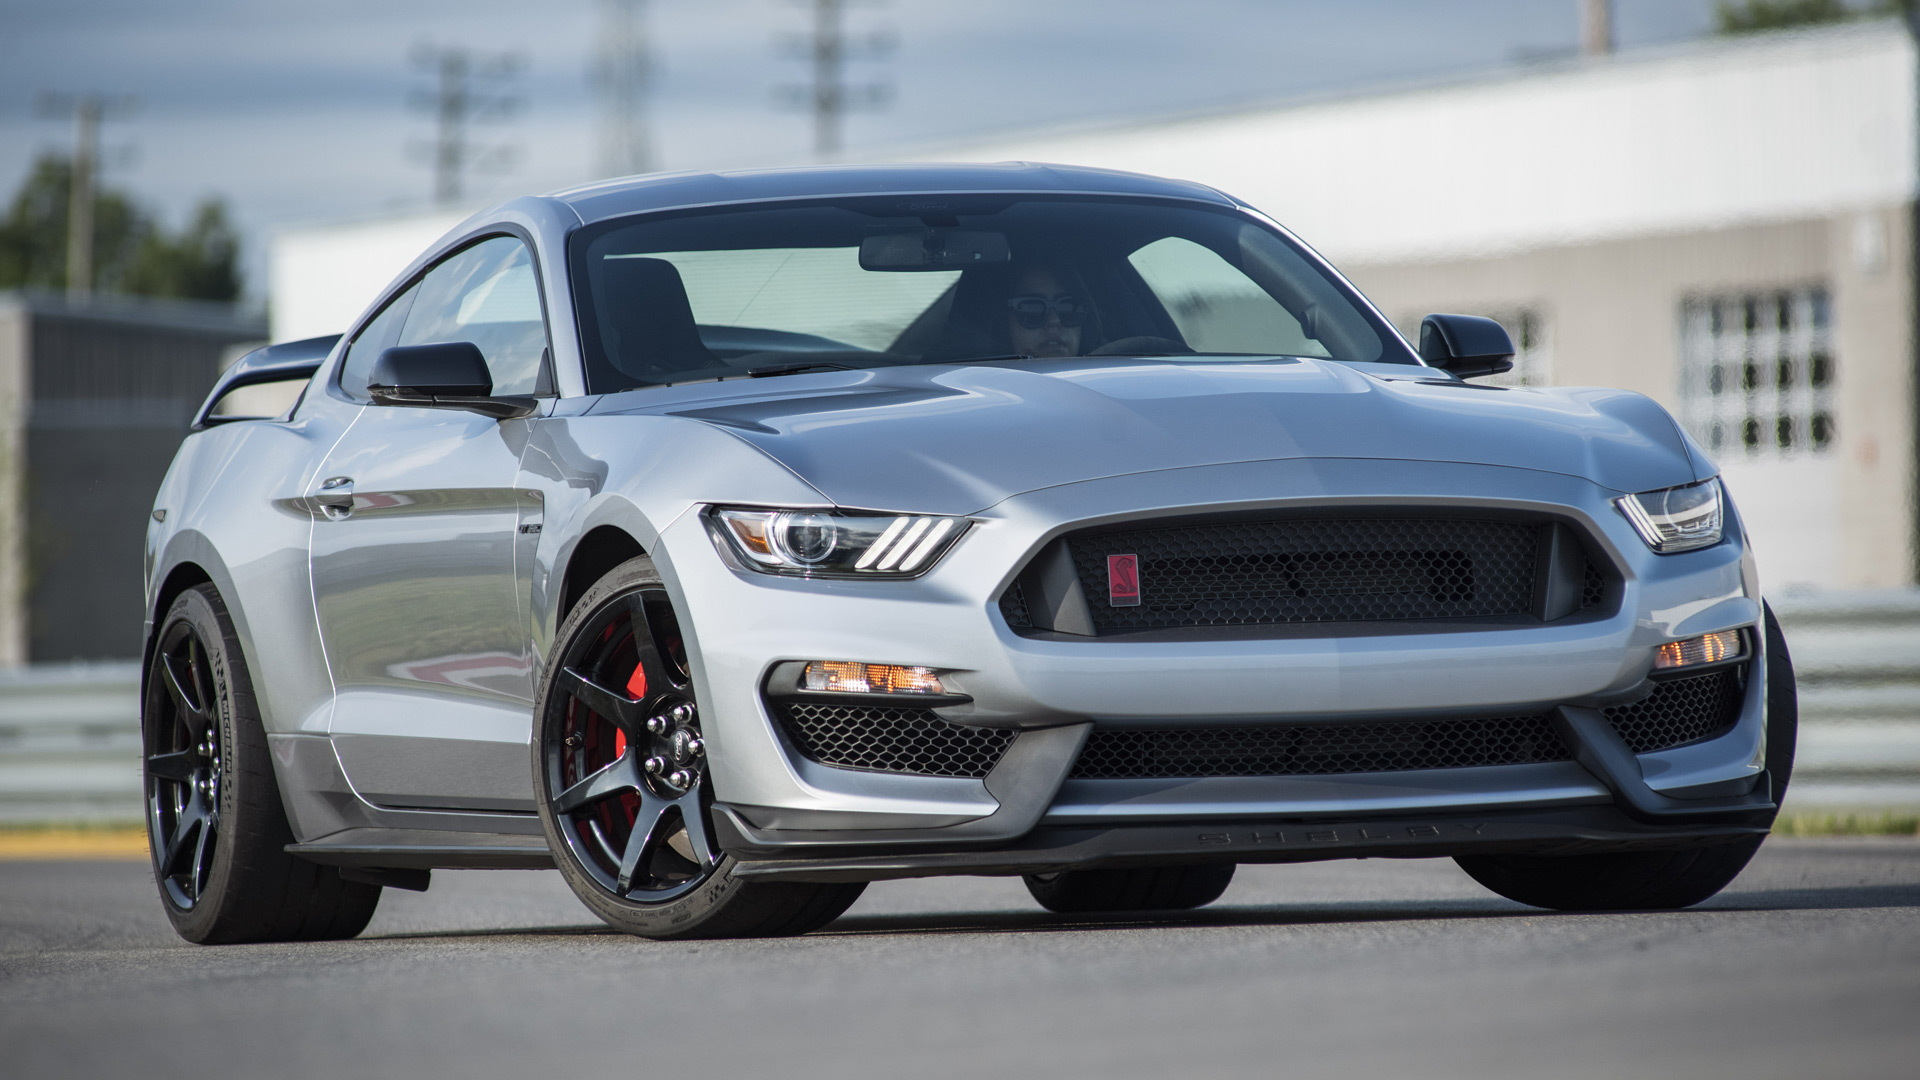 2020 Is Final Year For Ford Mustang Shelby Gt350